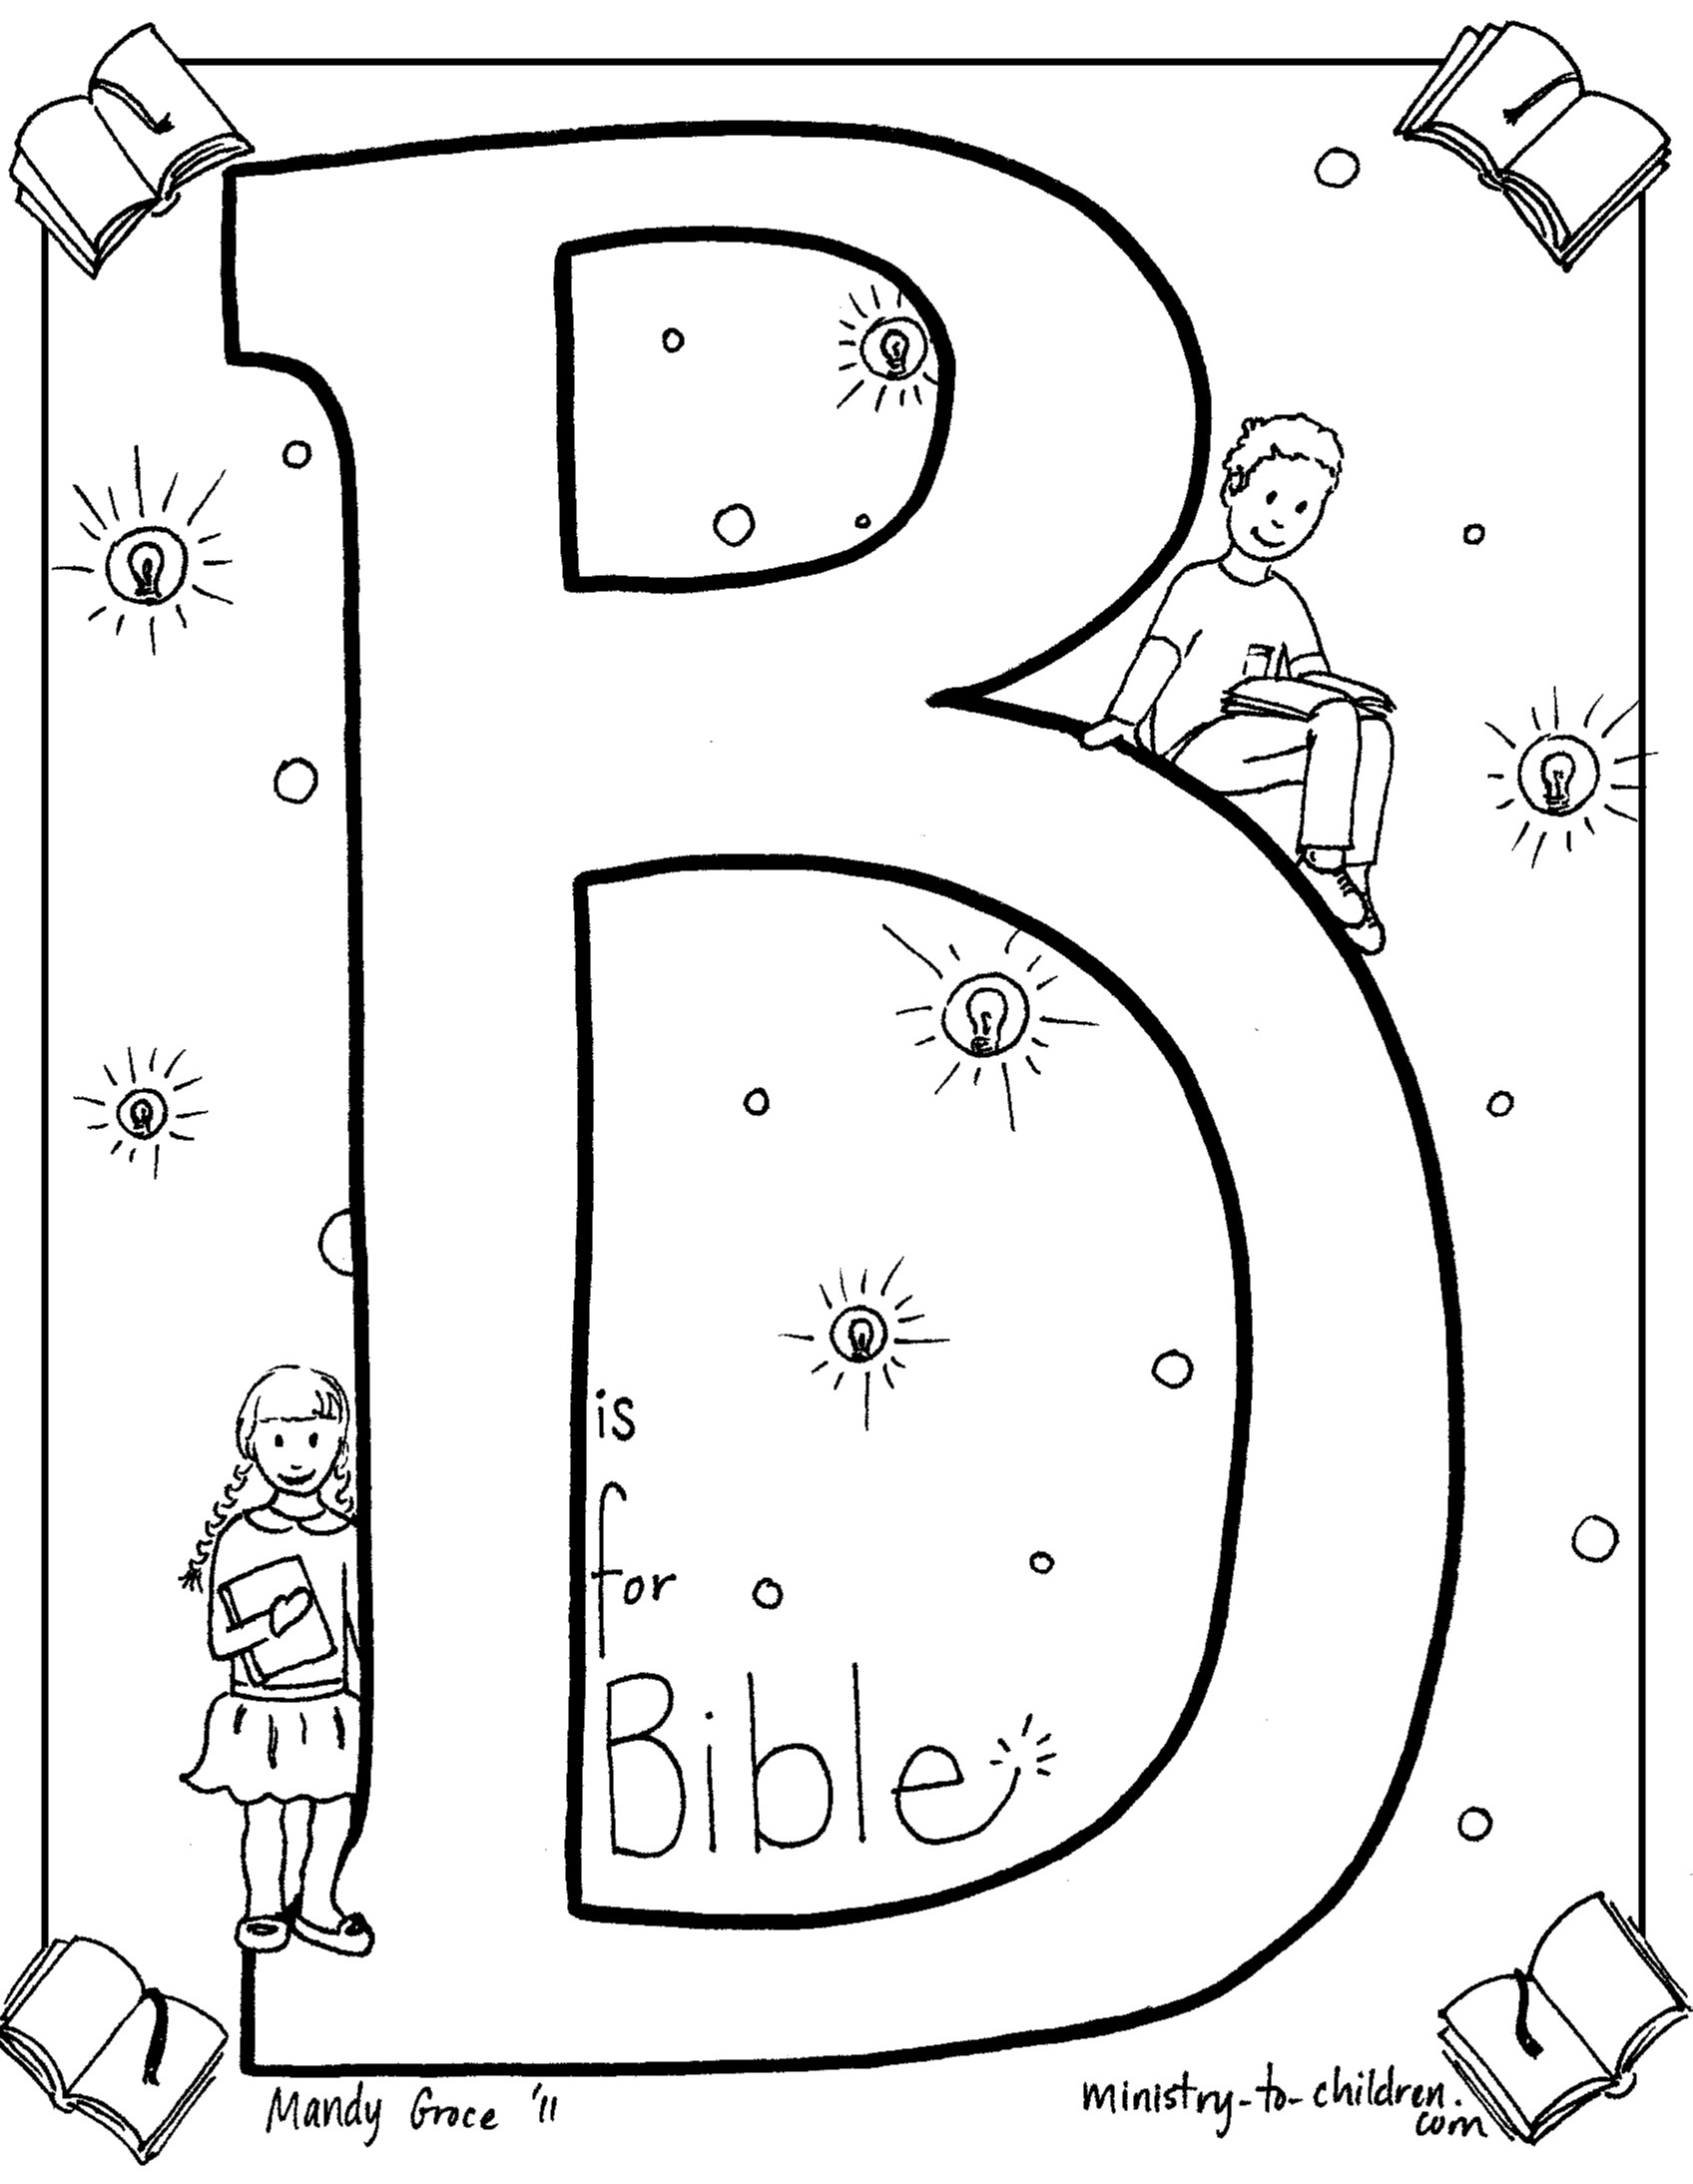 Coloring Pages In The Bible : Faithful obedience 18 Bible coloring pages clip art pictures Print Color Craft